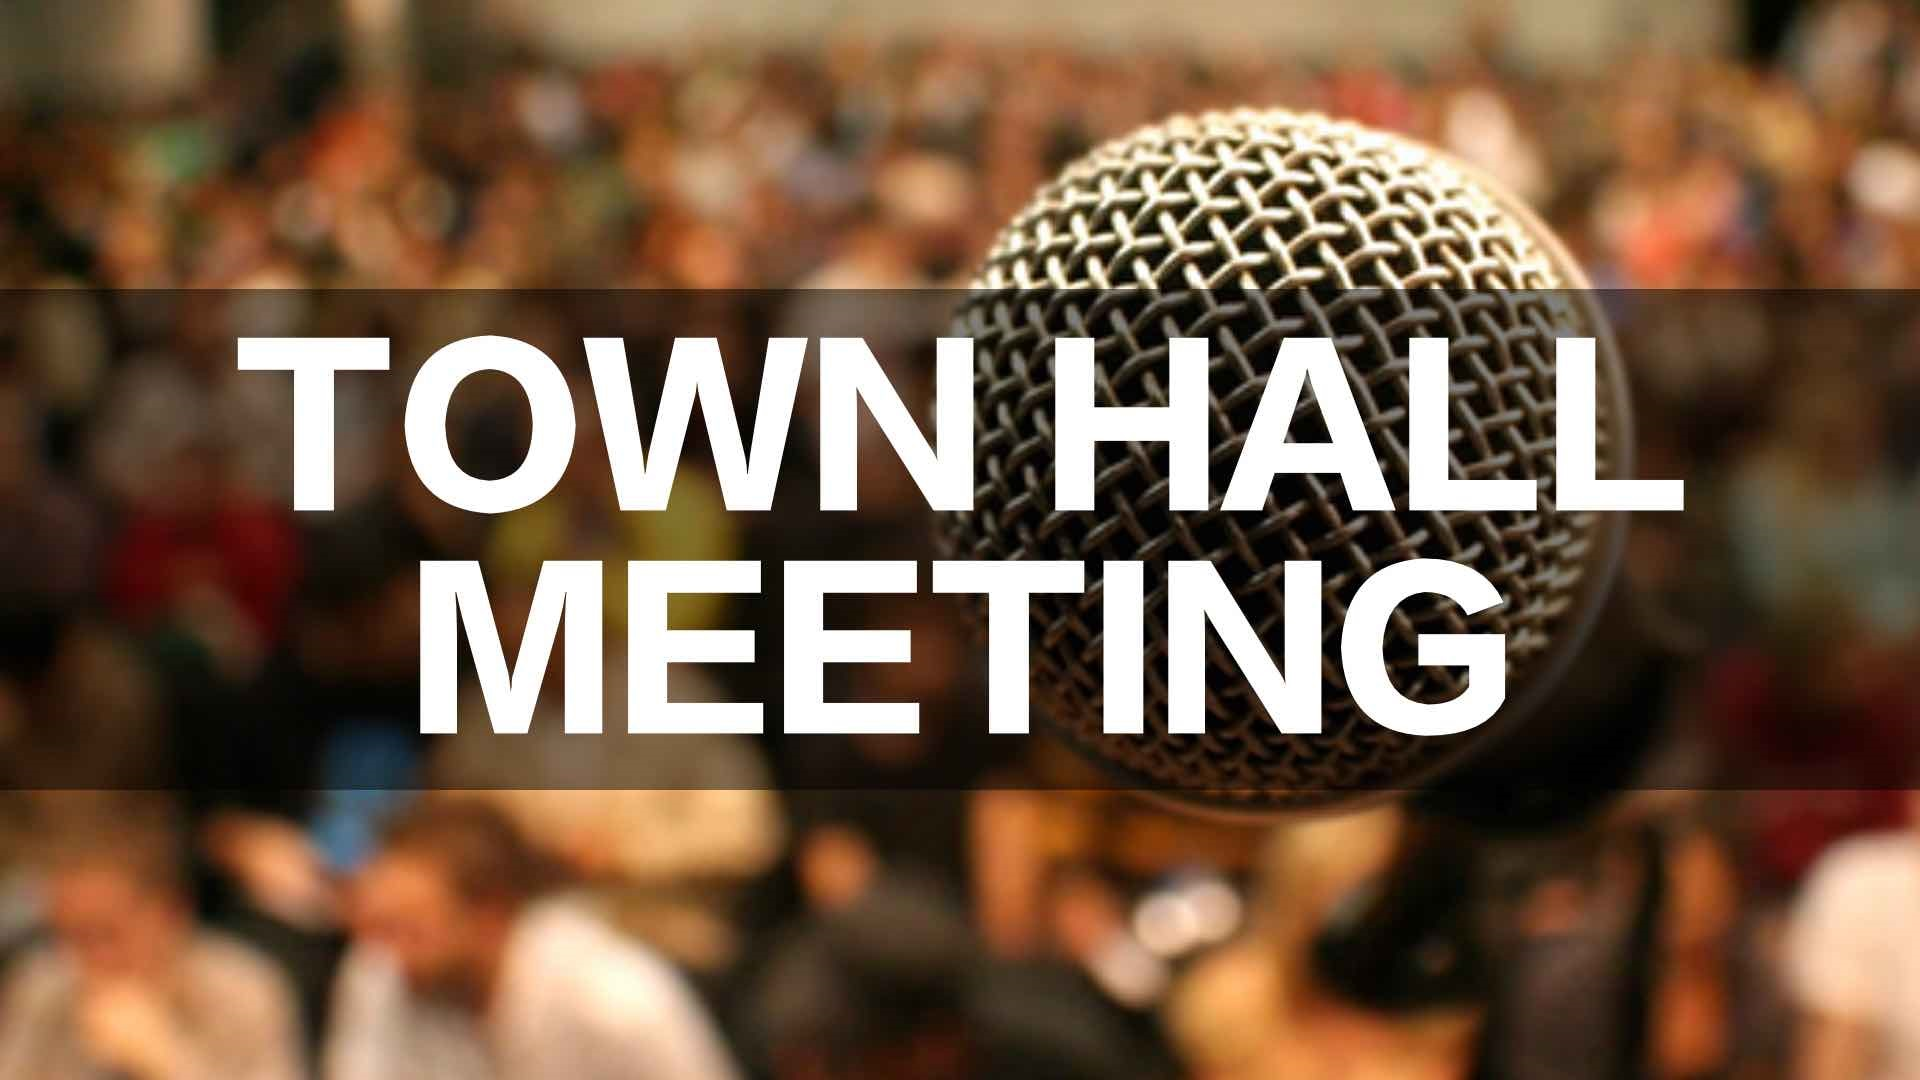 An image of a microphone in focus with blurred individuals in the background.  Text says Town Hall Meeting.